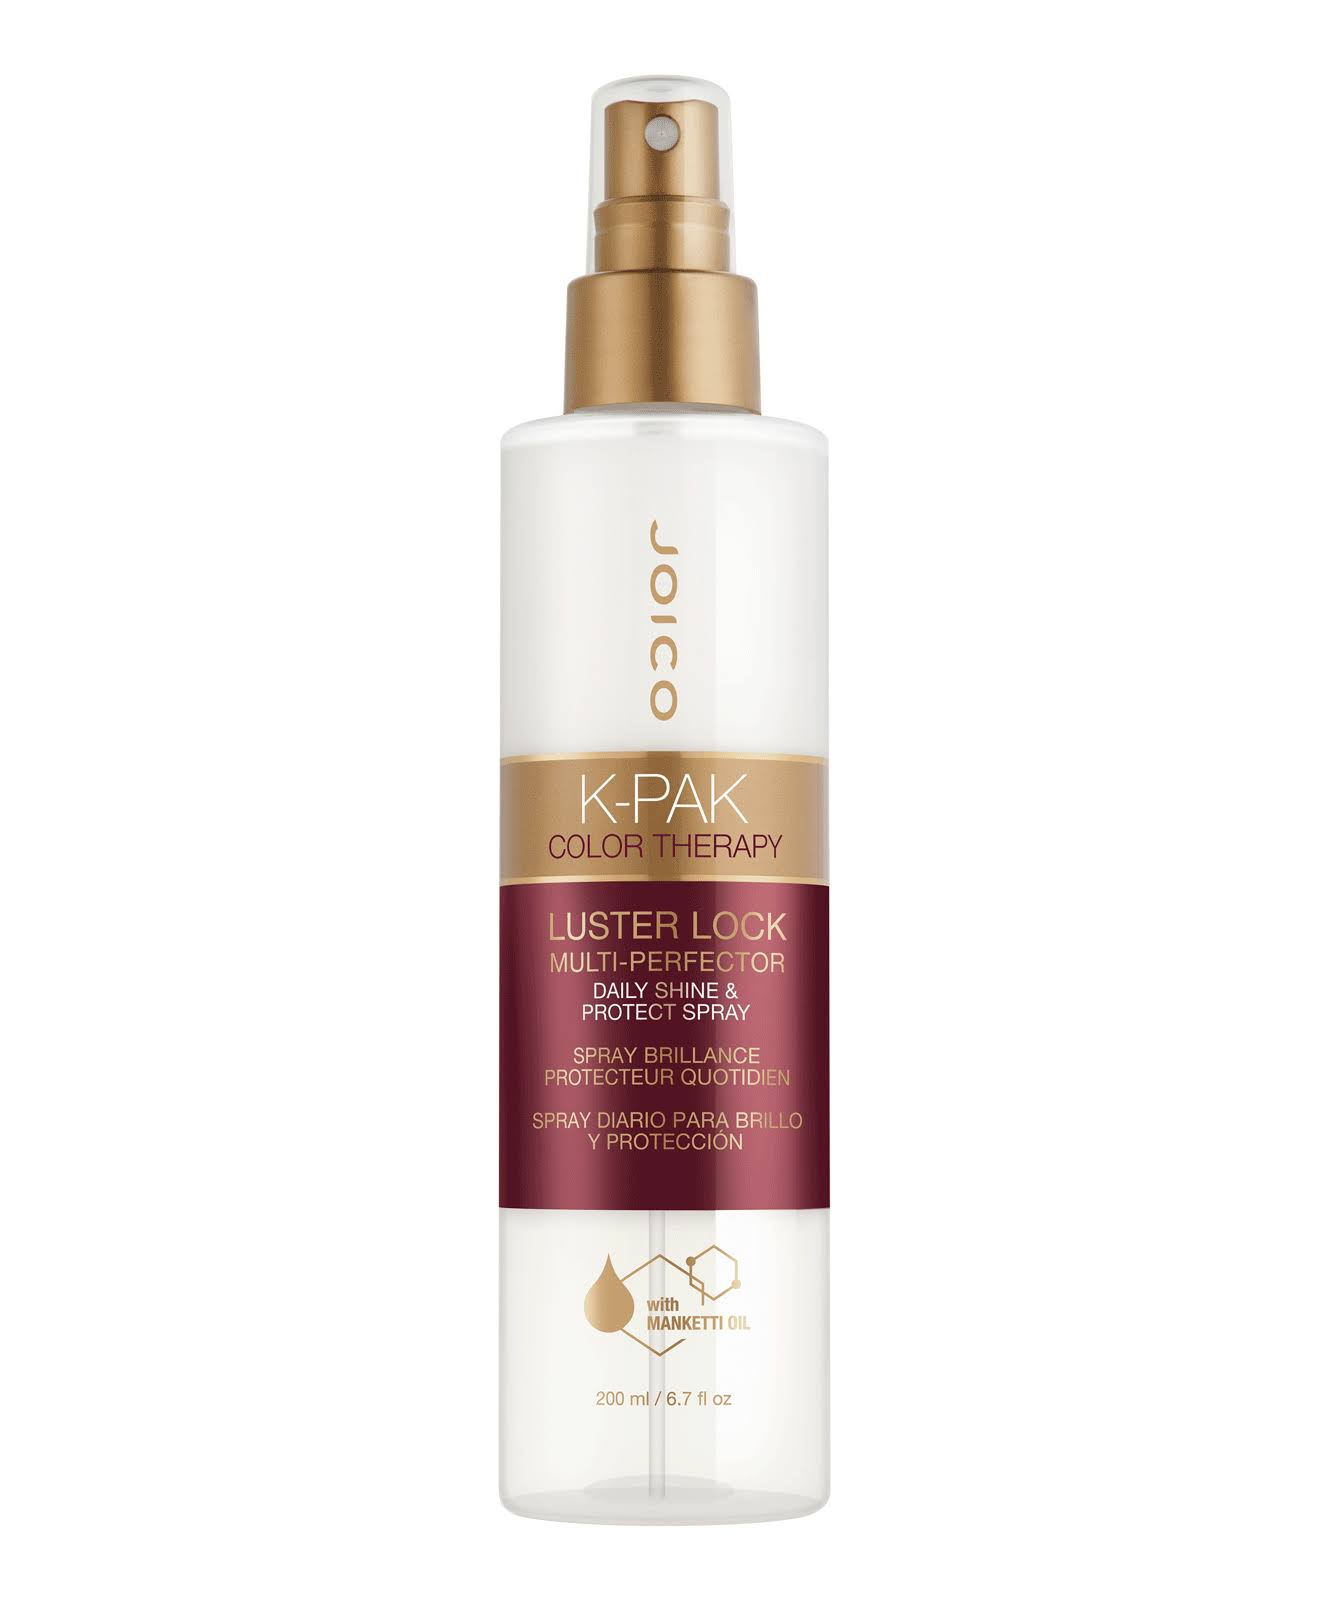 Joico K-pak Color Therapy Luster Lock Spray - 6.7oz